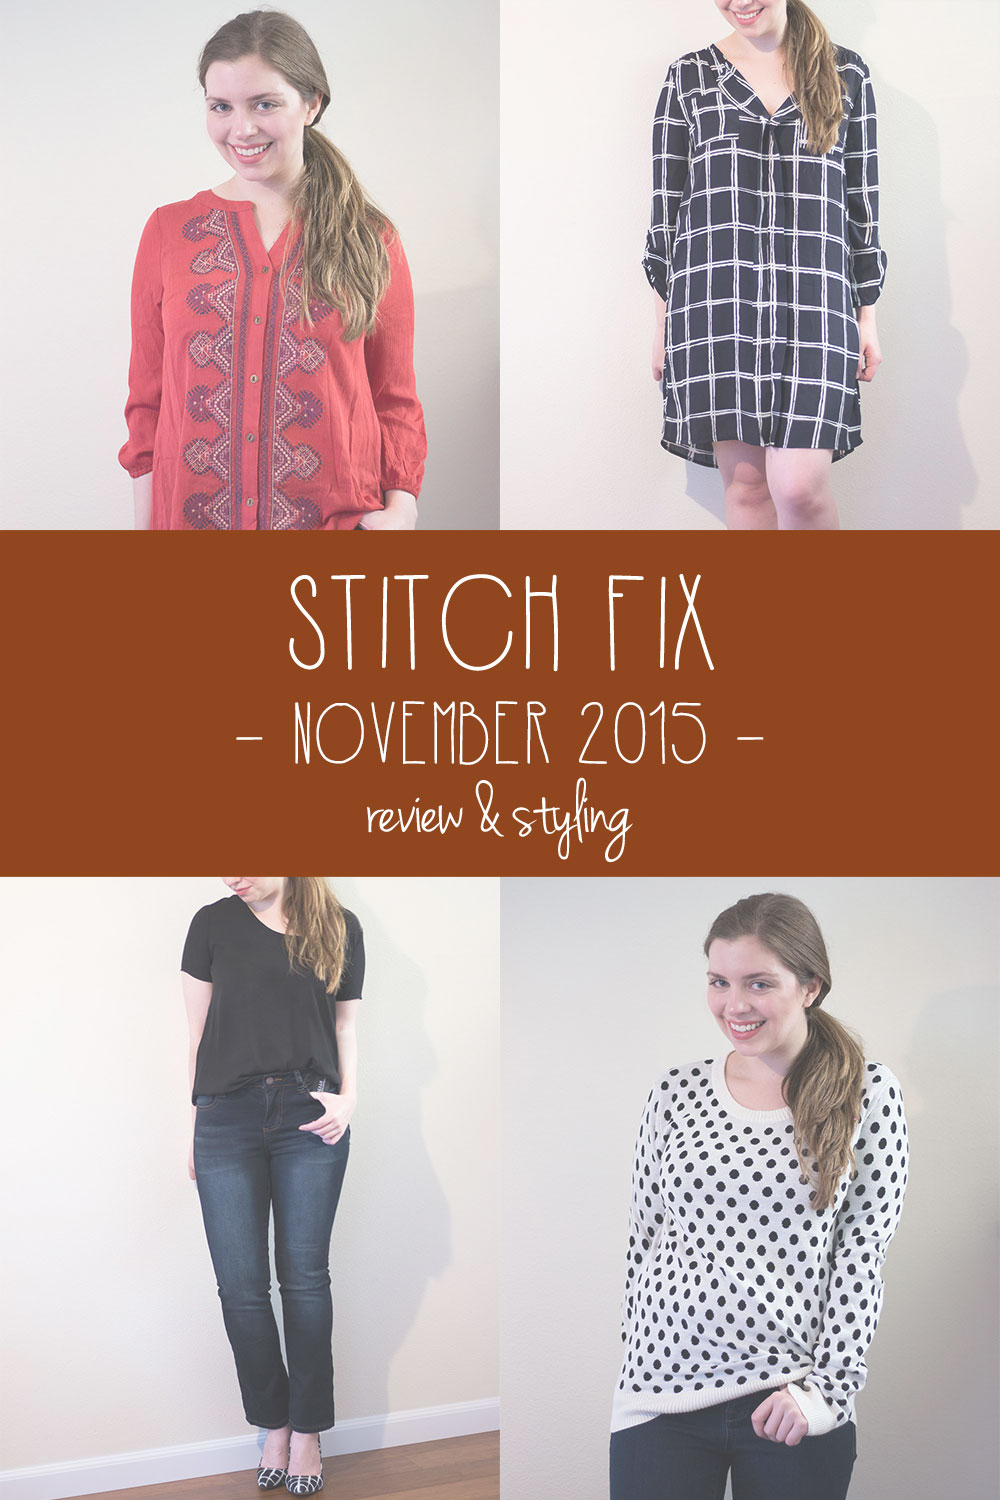 Stitch Fix November 2015 Review & Styling // hellorigby seattle fashion blog